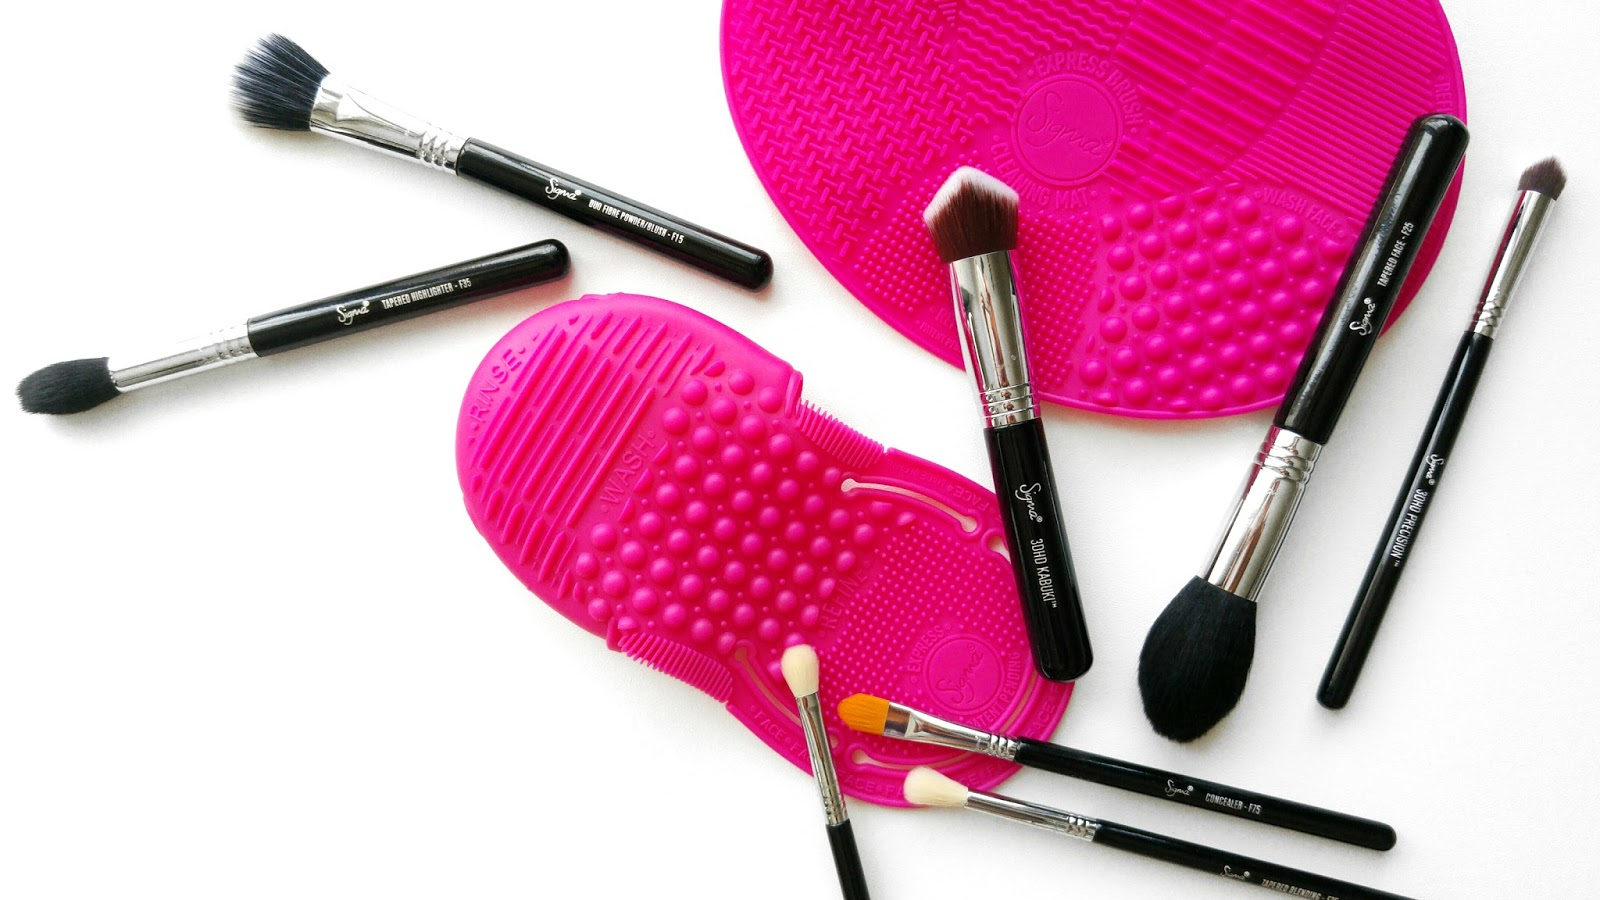 Battle of the Sigma Express Cleaning Glove and Sigma Express Cleaning Mat, Sigma Cleaning Glove, Sigma Cleaning Mat, How To Clean Makeup Brushes, How To Clean Sigma Makeup Brushes